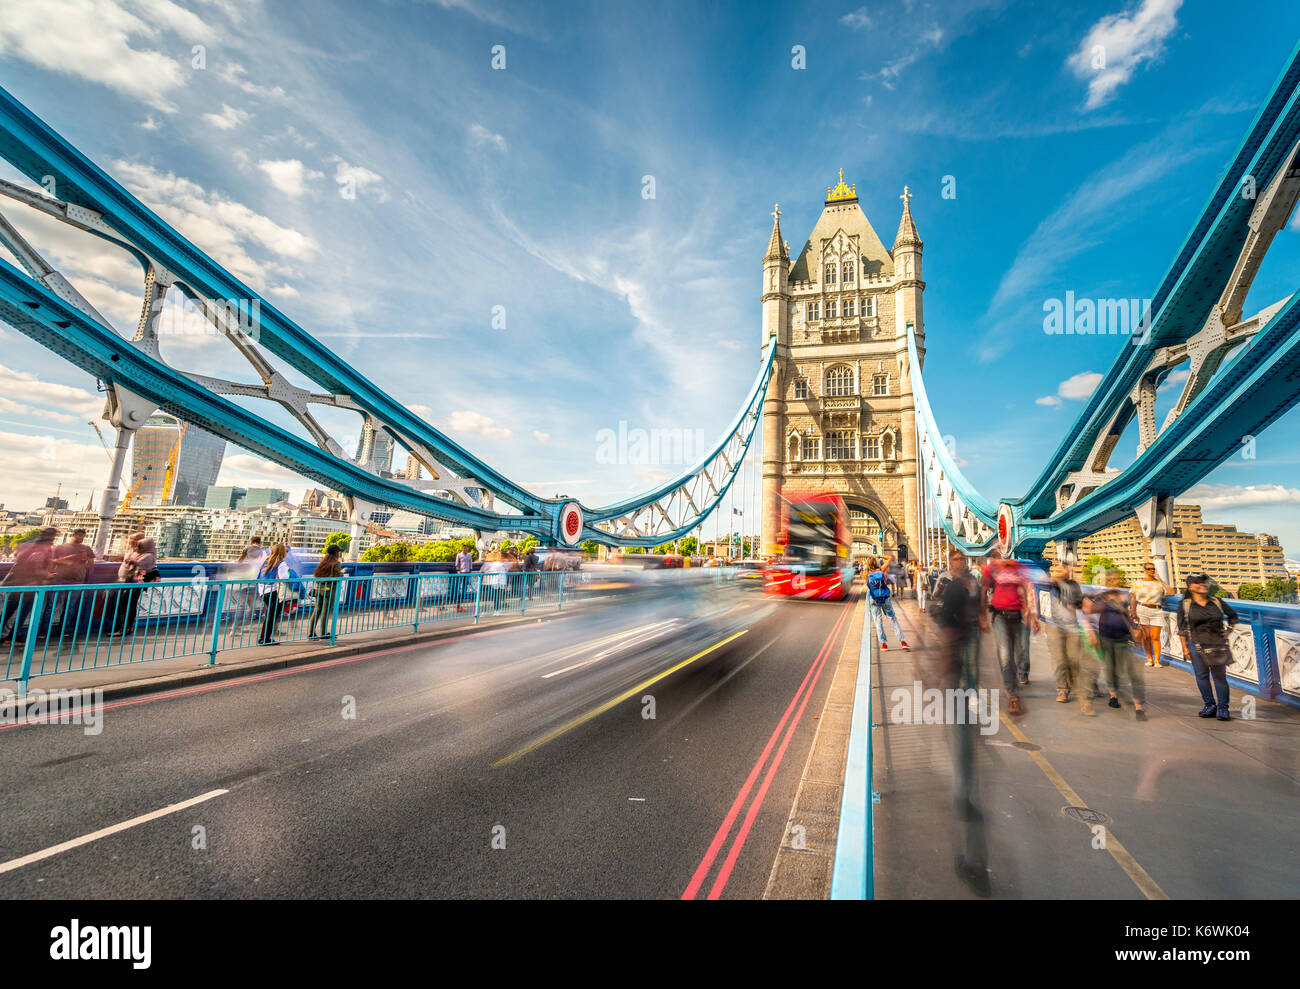 Red double-decker bus on the Tower Bridge with passers-by, motion blur, Southwark, London, England, Great Britain - Stock Image